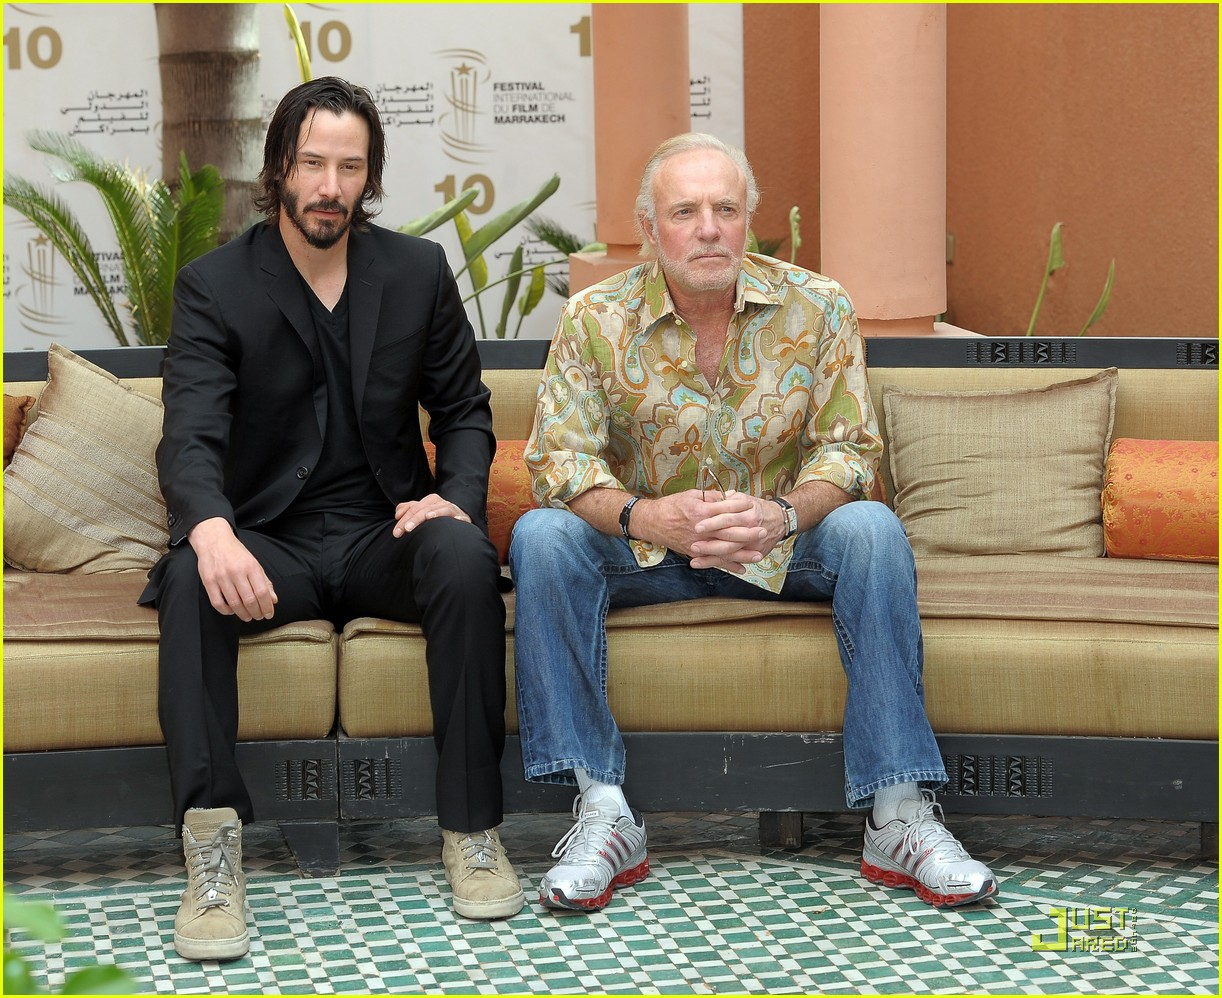 Patchy Beard Keanu Reeves Keanu reeves marrakech filmPatchy Beard Keanu Reeves